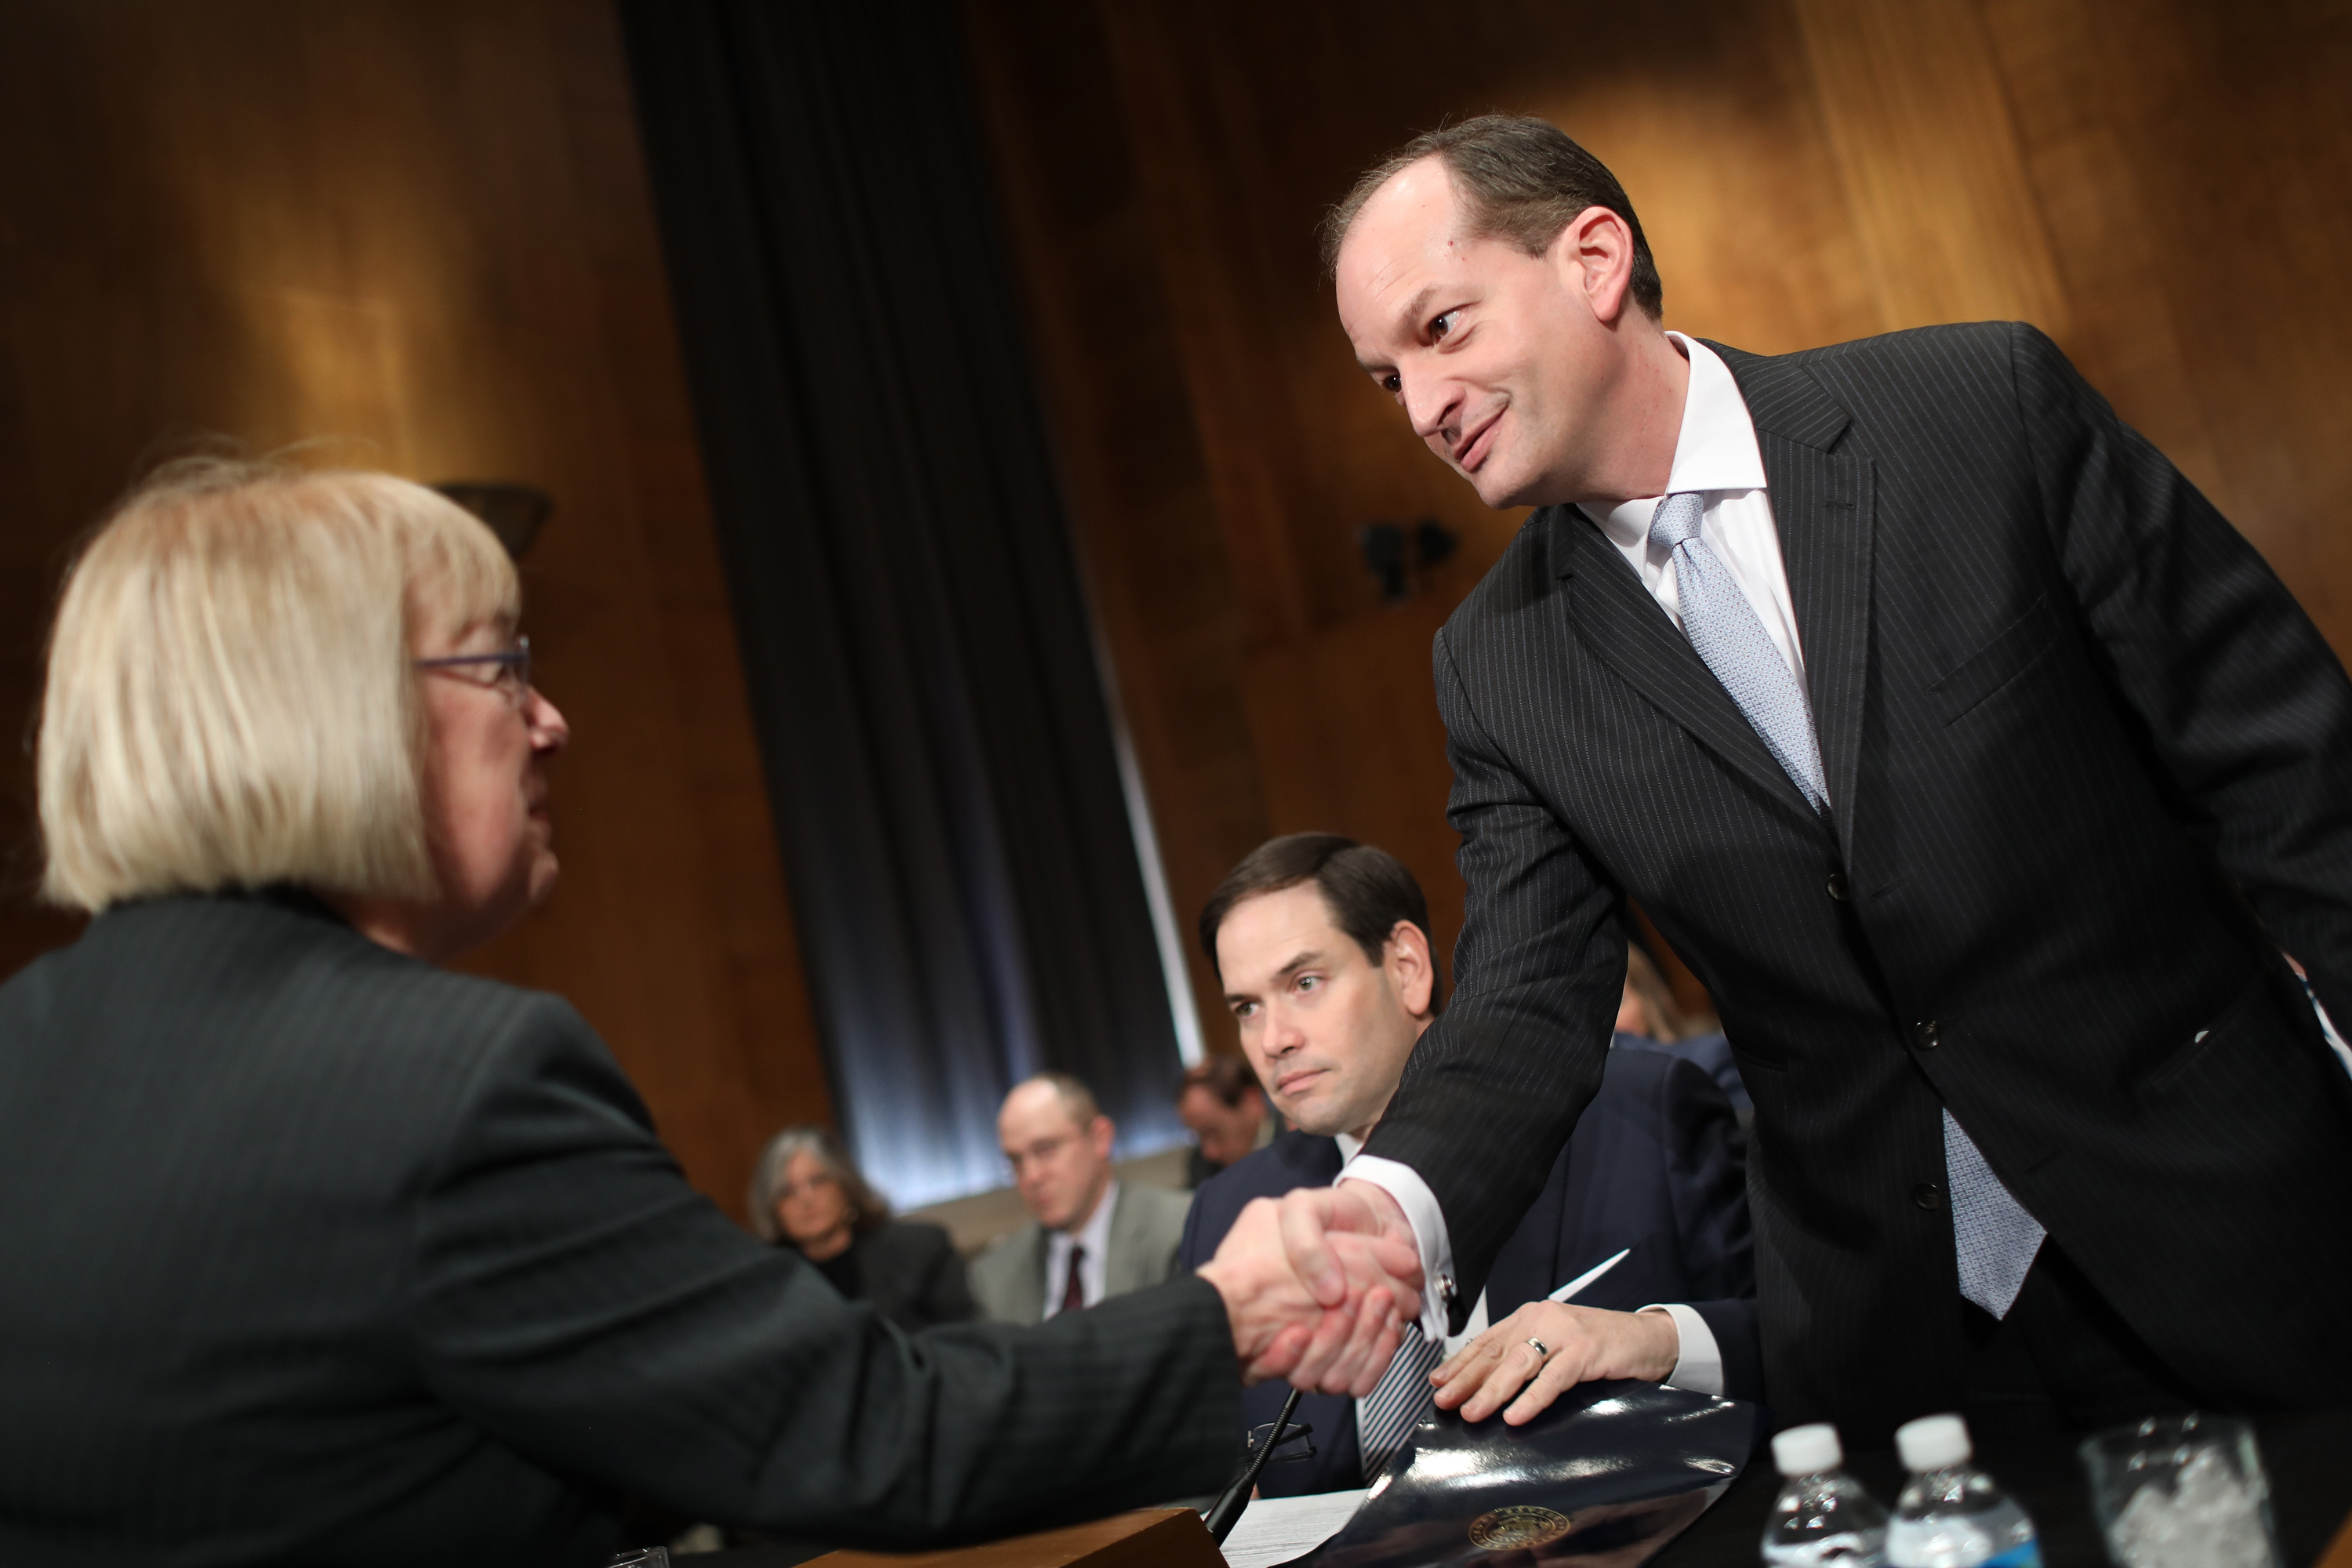 WASHINGTON, DC - MARCH 22: Ranking member U.S. Sen. Patty Murray (L) (D-WA) greets Labor Secretary nominee Alexander Acosta (R) before Acosta's testimony before the Senate Health, Education, Labor and Pensions Committee during his confirmation hearing March 22, 2017 in Washington, DC. Acosta was questioned by members of the committee on his opinions relating to overtime rules during the early portion of the hearing. Also pictured is Sen. Marco Rubio (L) who introduced Acosta. (Photo by Win McNamee/Getty Images)